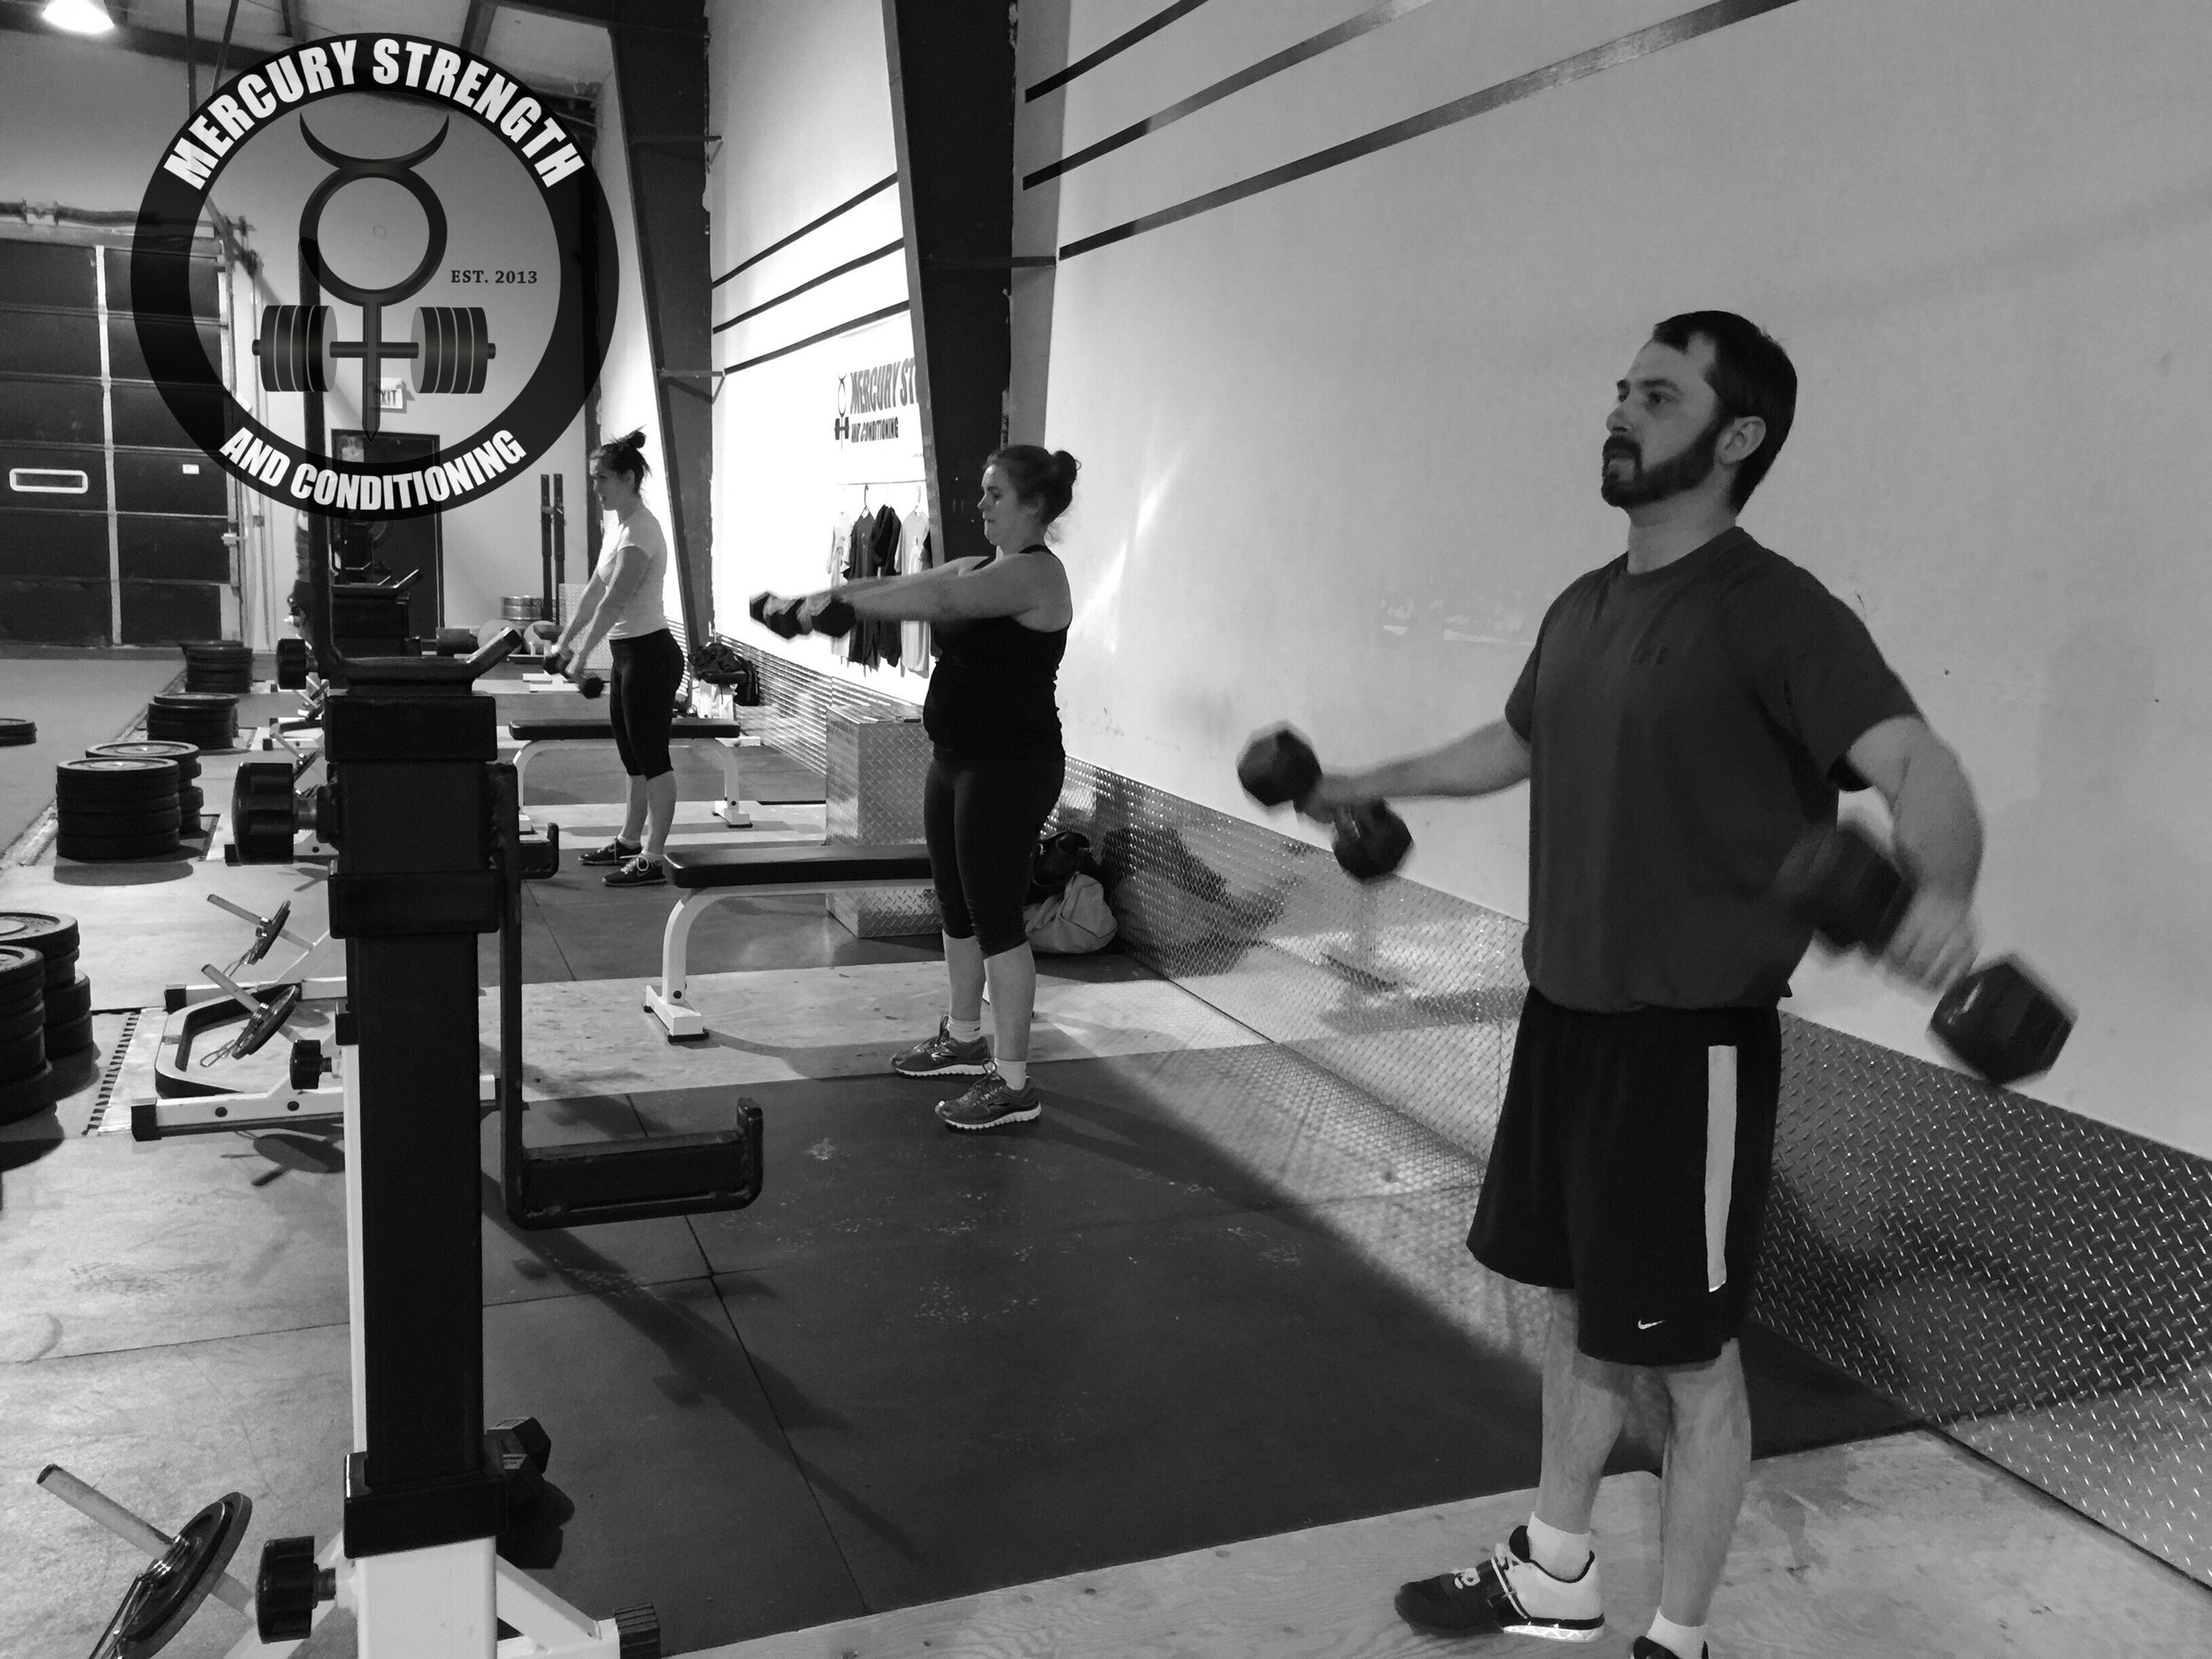 Nick, Keri, and Julie with some dumbbell work